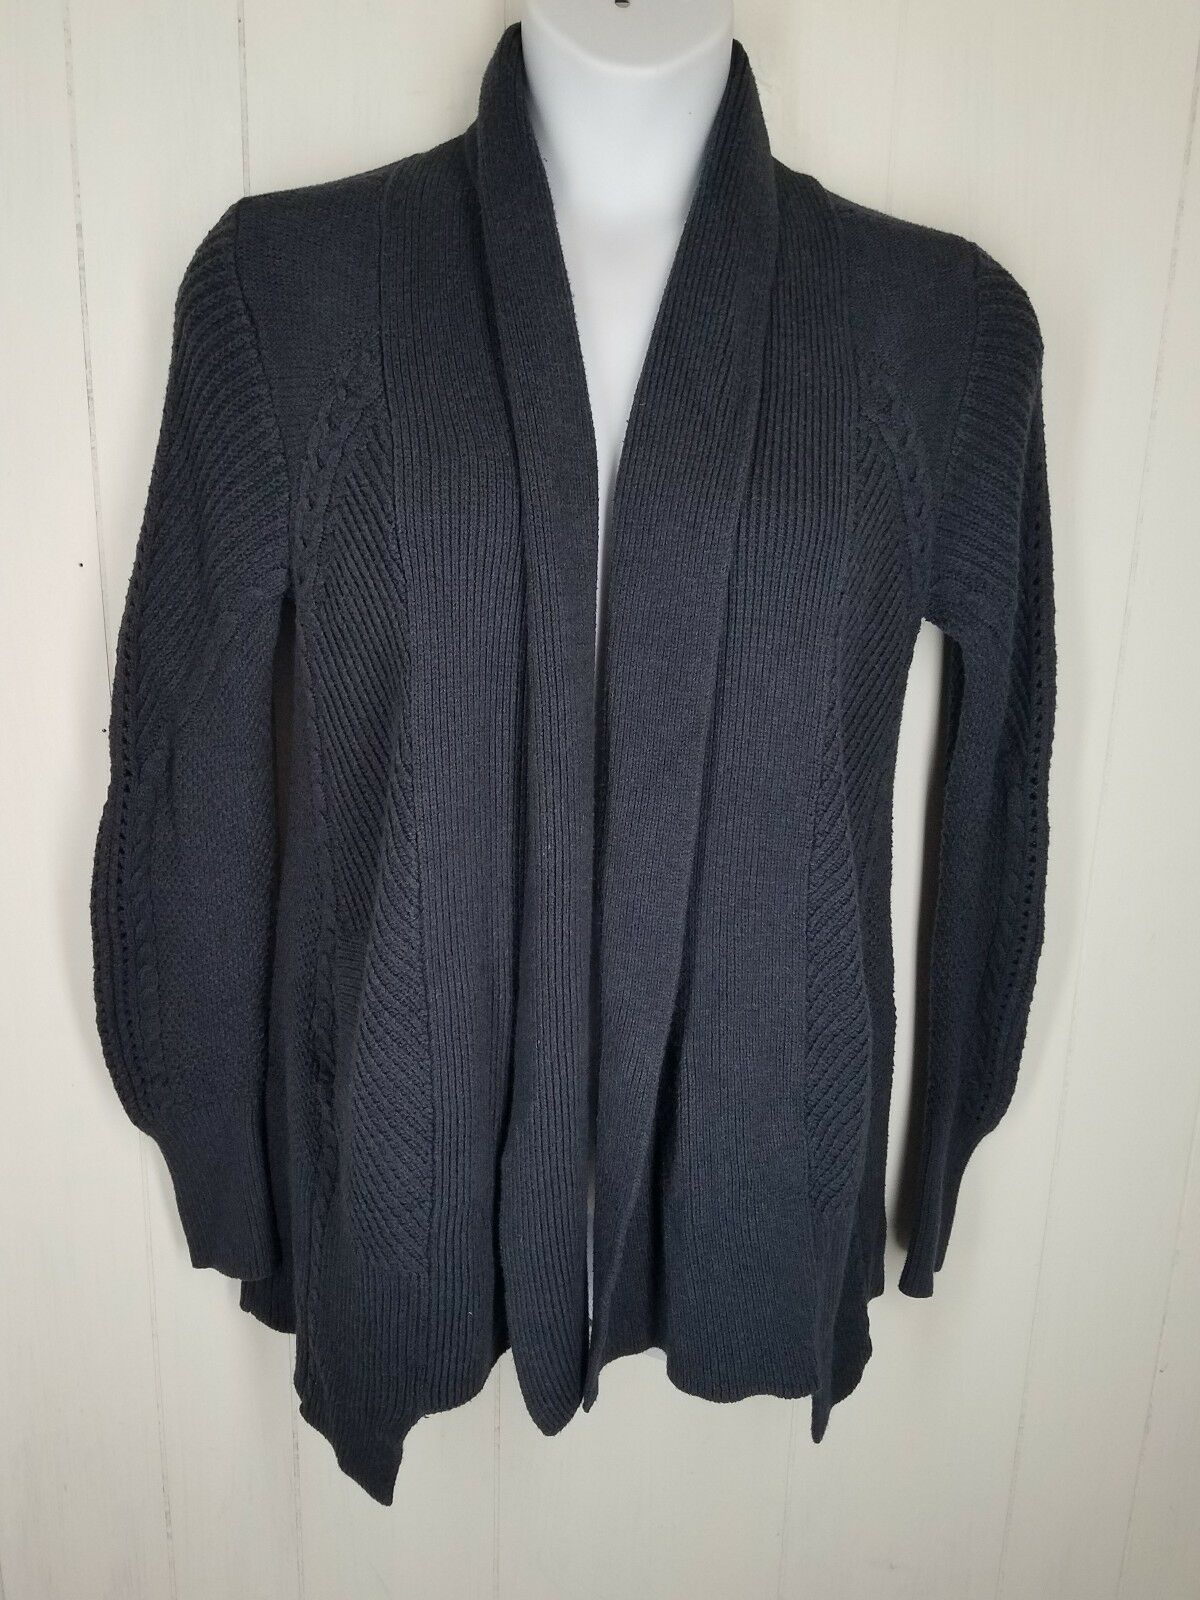 Cabi Medium Country Side Sweater Womens Cardigan Navy bluee 3014 Navy bluee Cotton